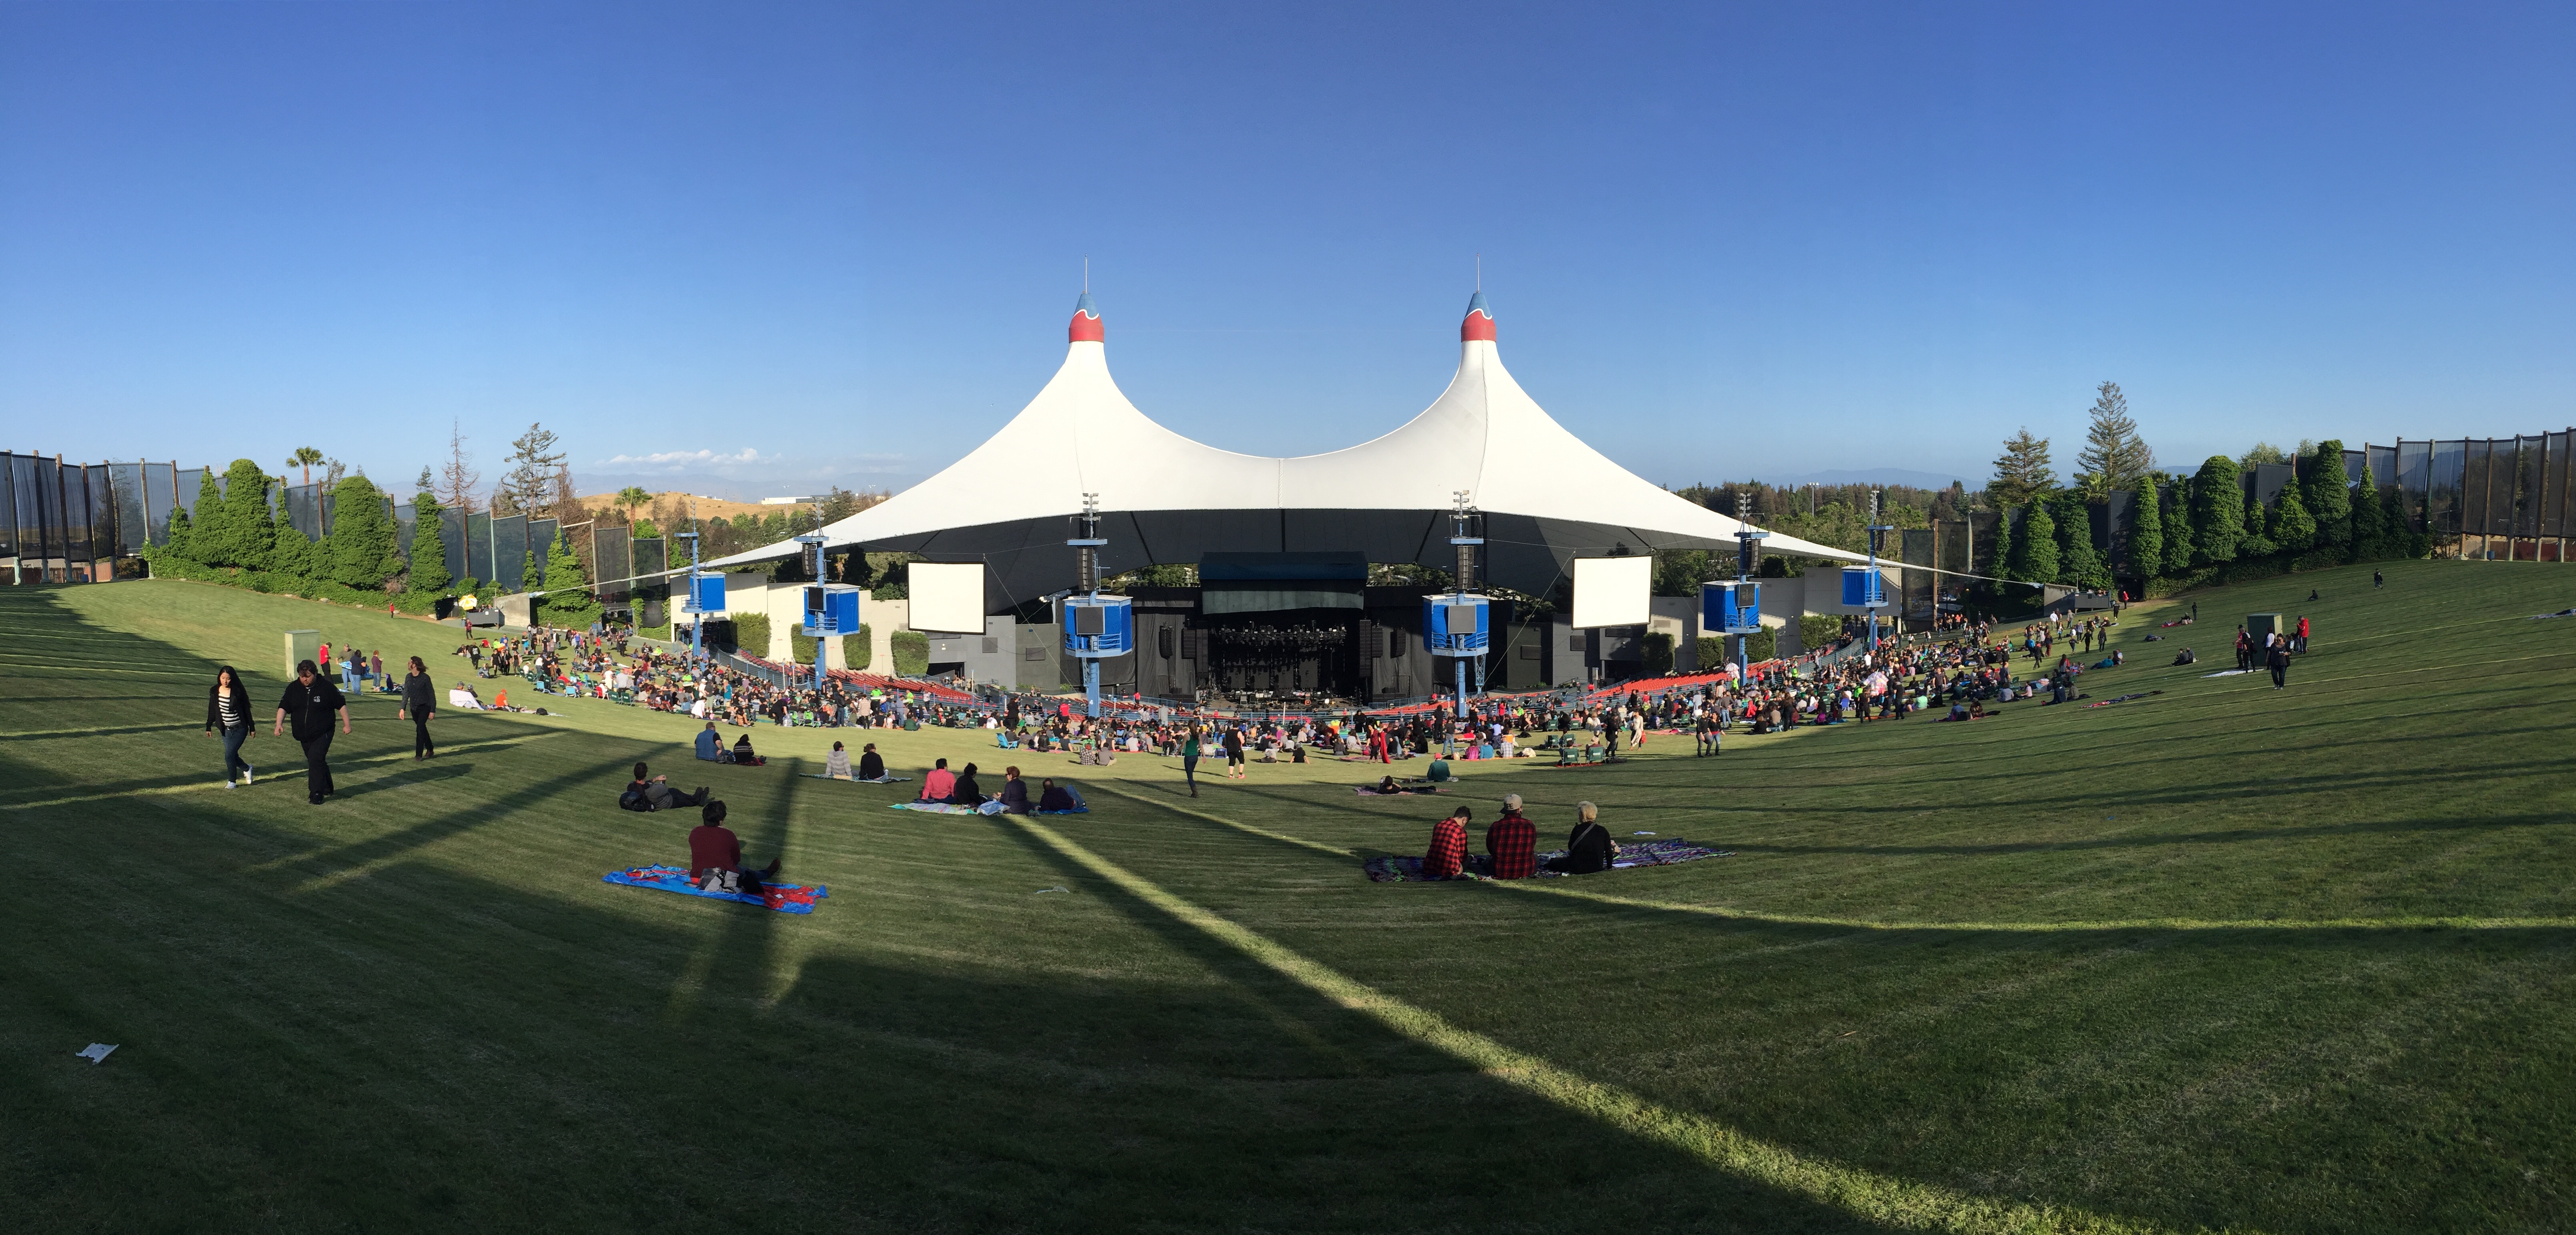 shoreline amphitheatre at mountainview tent canopy, stage and lawn